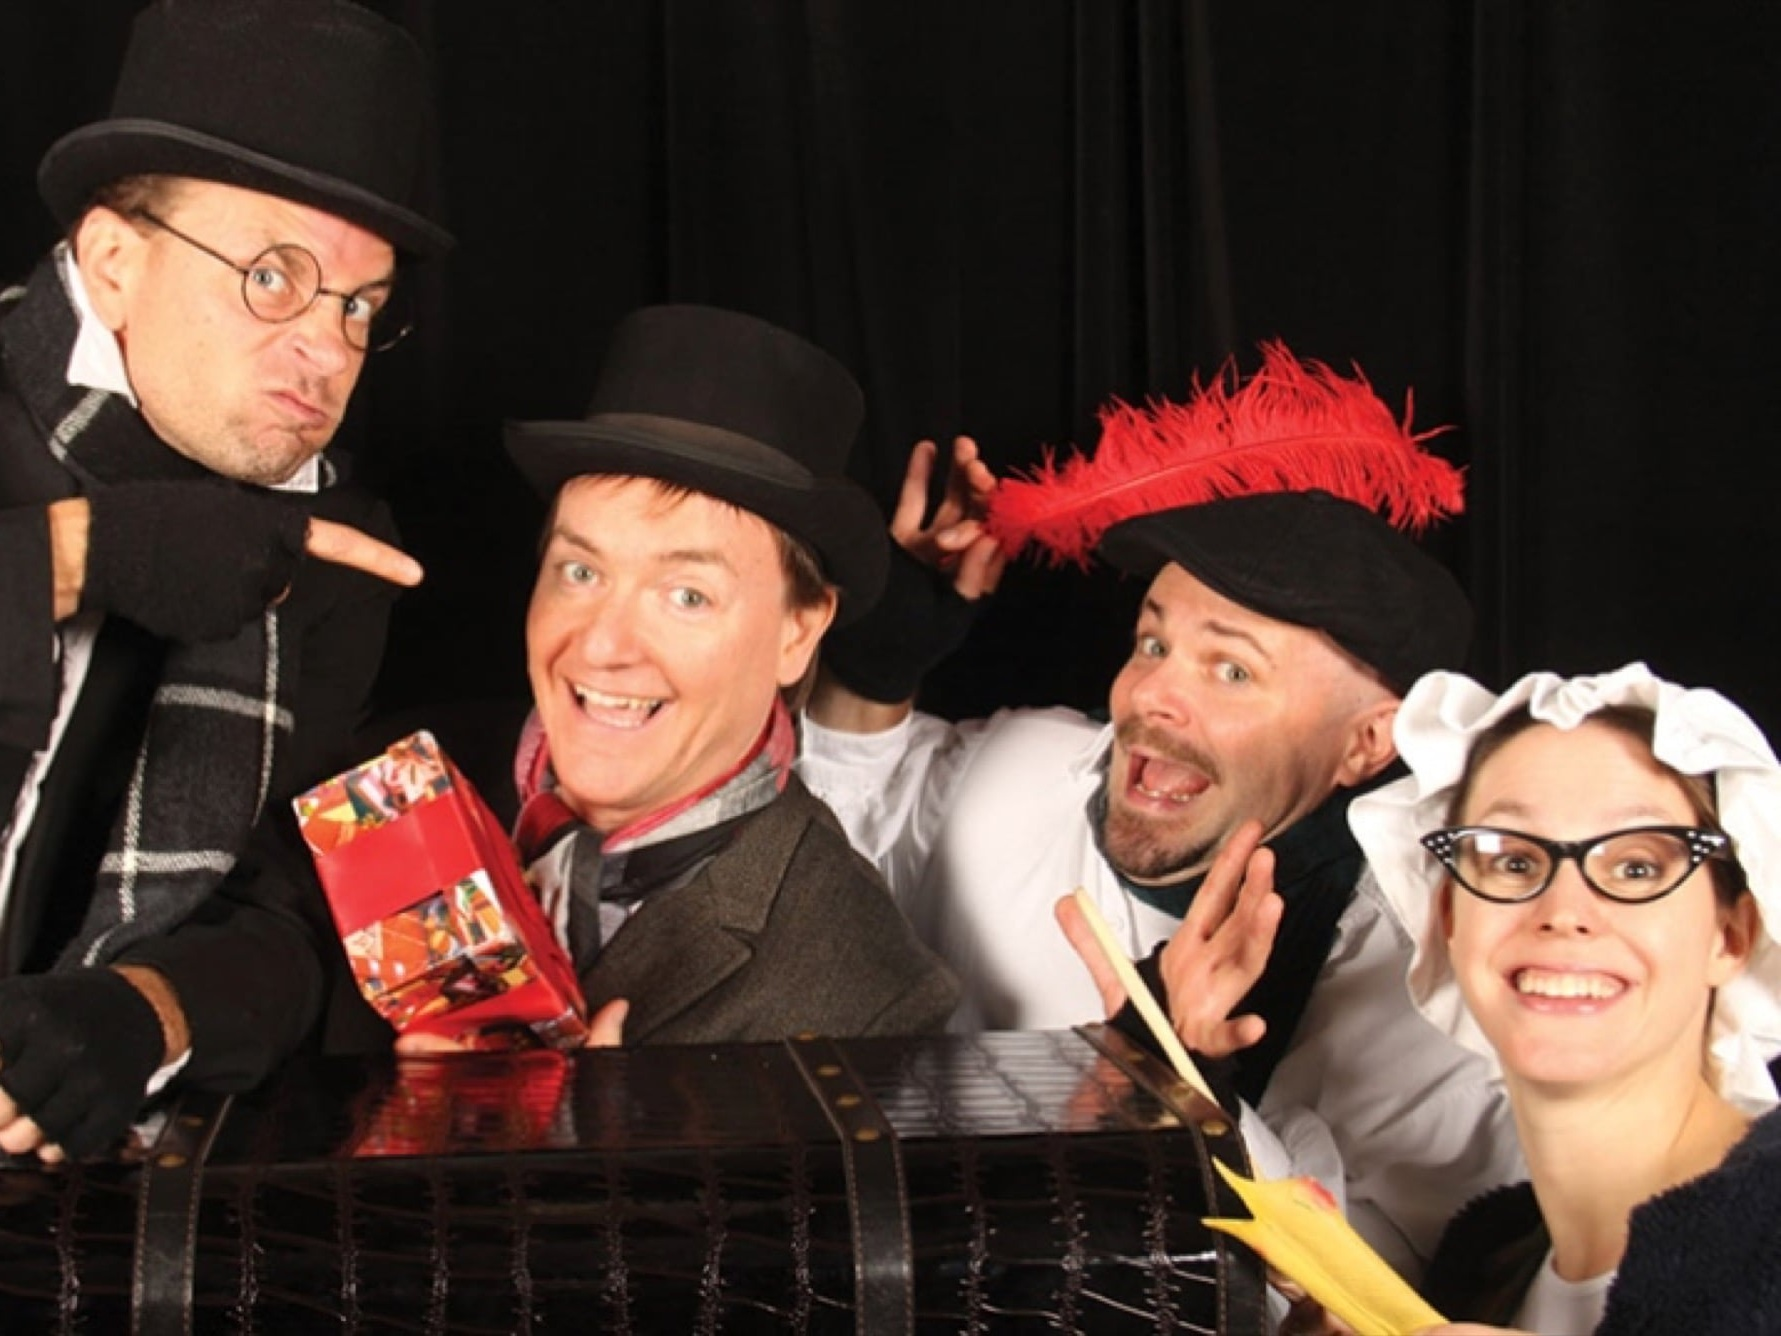 A Christmas CarolDuffleBag Theatre - November 30, 2019 - 2pmExperience a holiday classic with a twist in this witty and hilarious fun for all ages take on the iconic Charles Dickens Yuletide seasonal story of penny-pincher miser Ebenezer Scrooge.There will be plenty of laughs, spontaneous improv, and even a little audience participation, as you journey with Scrooge, and the ghosts of Christmas past, present, and future, as he learns the true meaning of the season.Come expecting the unexpected and you won't be disappointed!